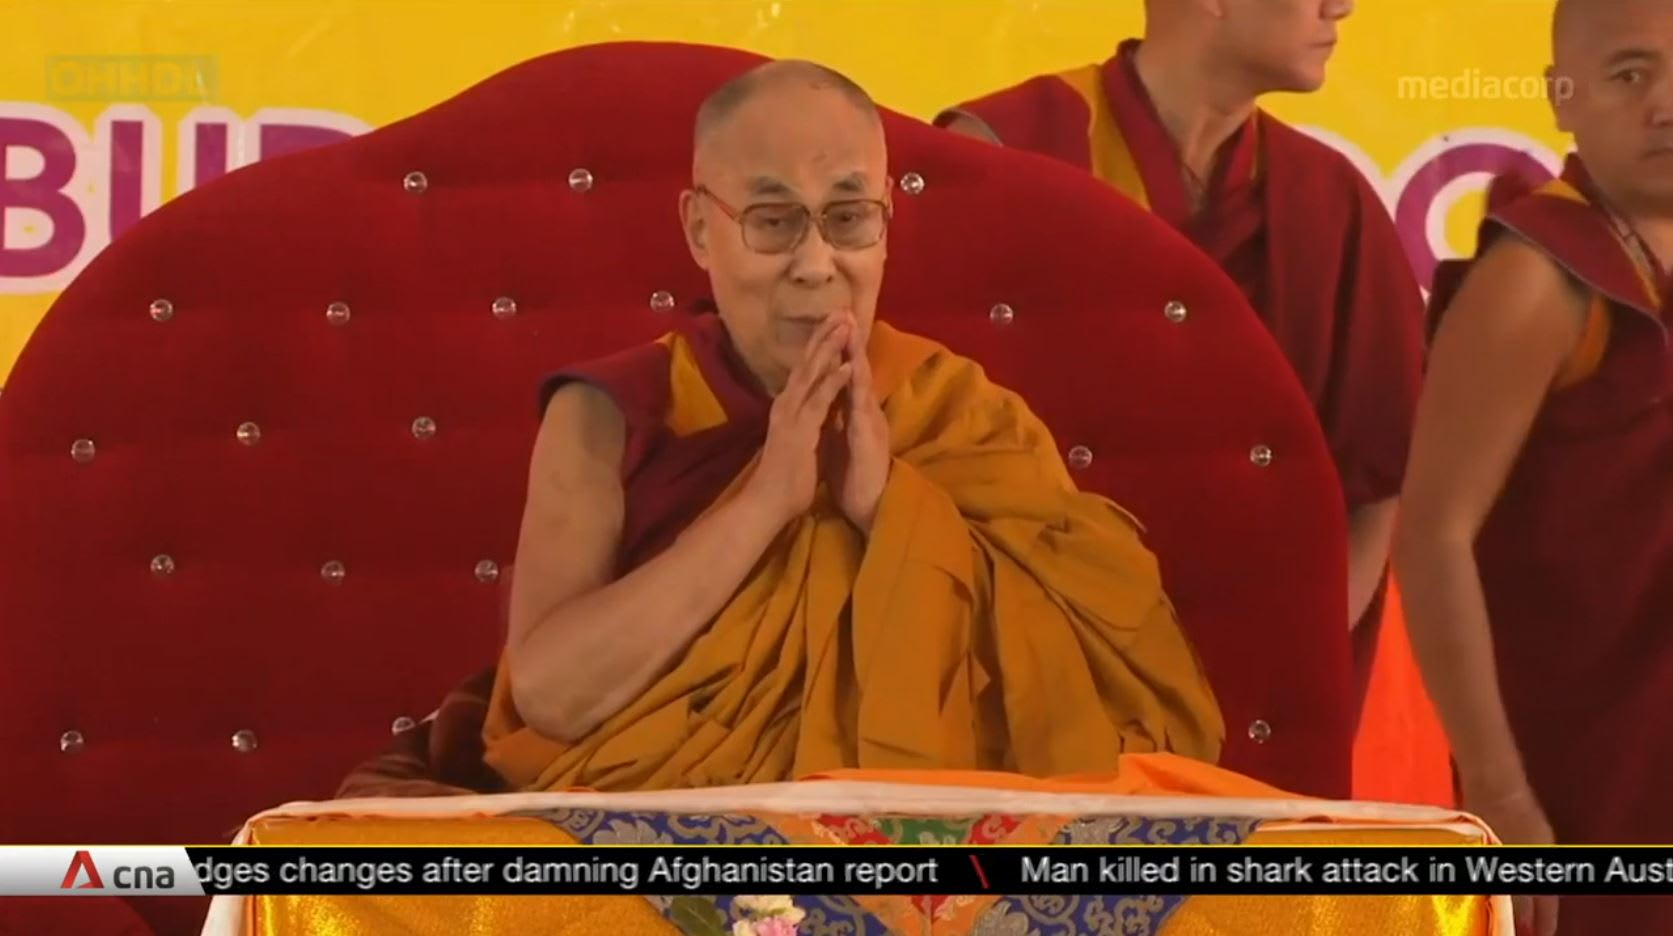 Dalai Lama's succession may be next flashpoint in Tibet after years of calm | Video